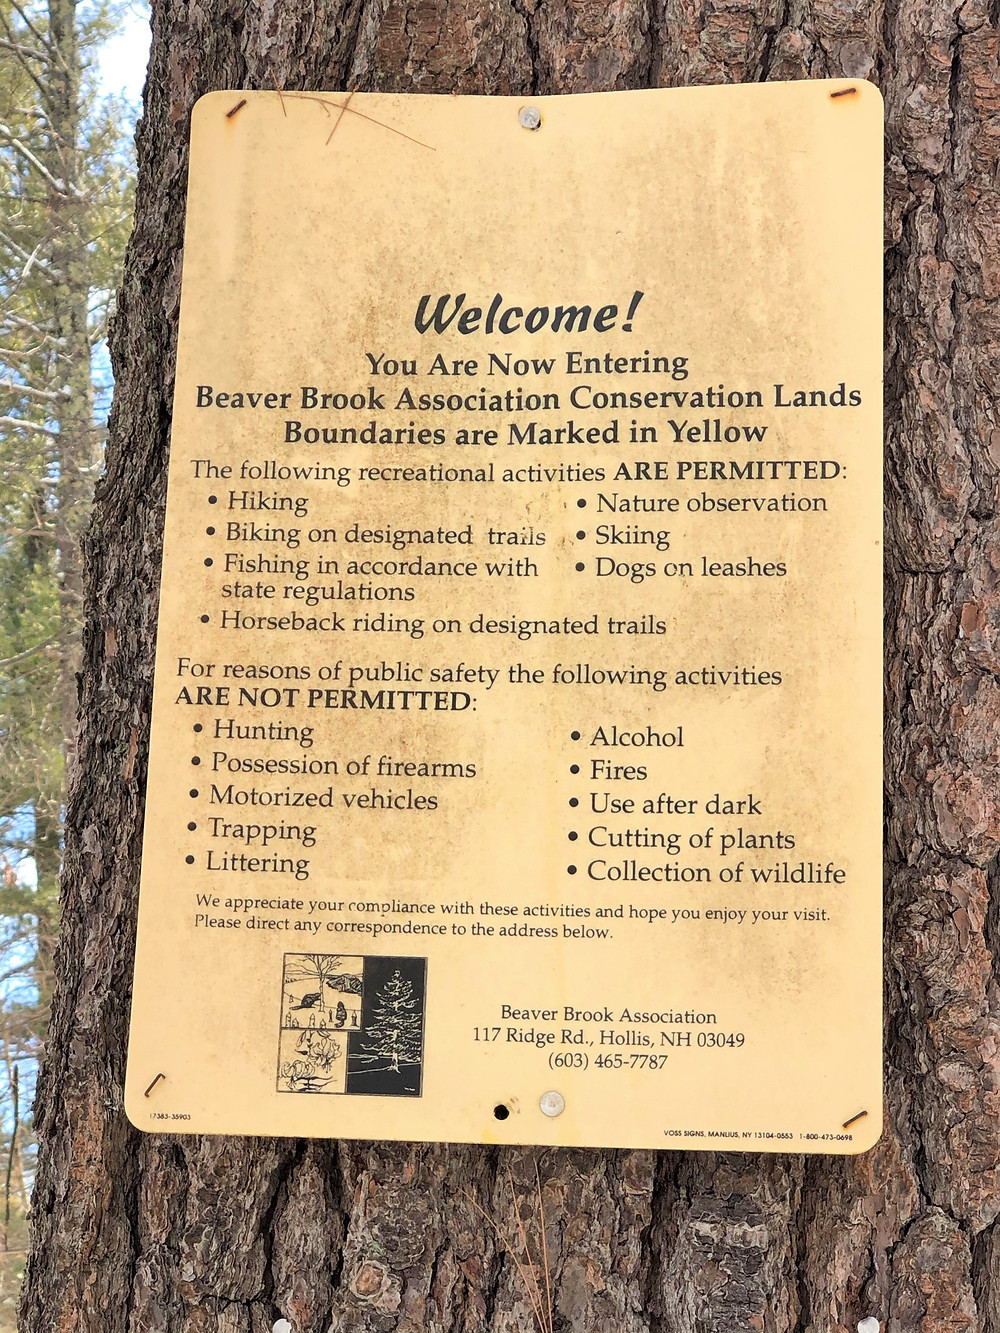 Welcome poster at Beaver Brook Conservation Lands in Hollis New Hampshire